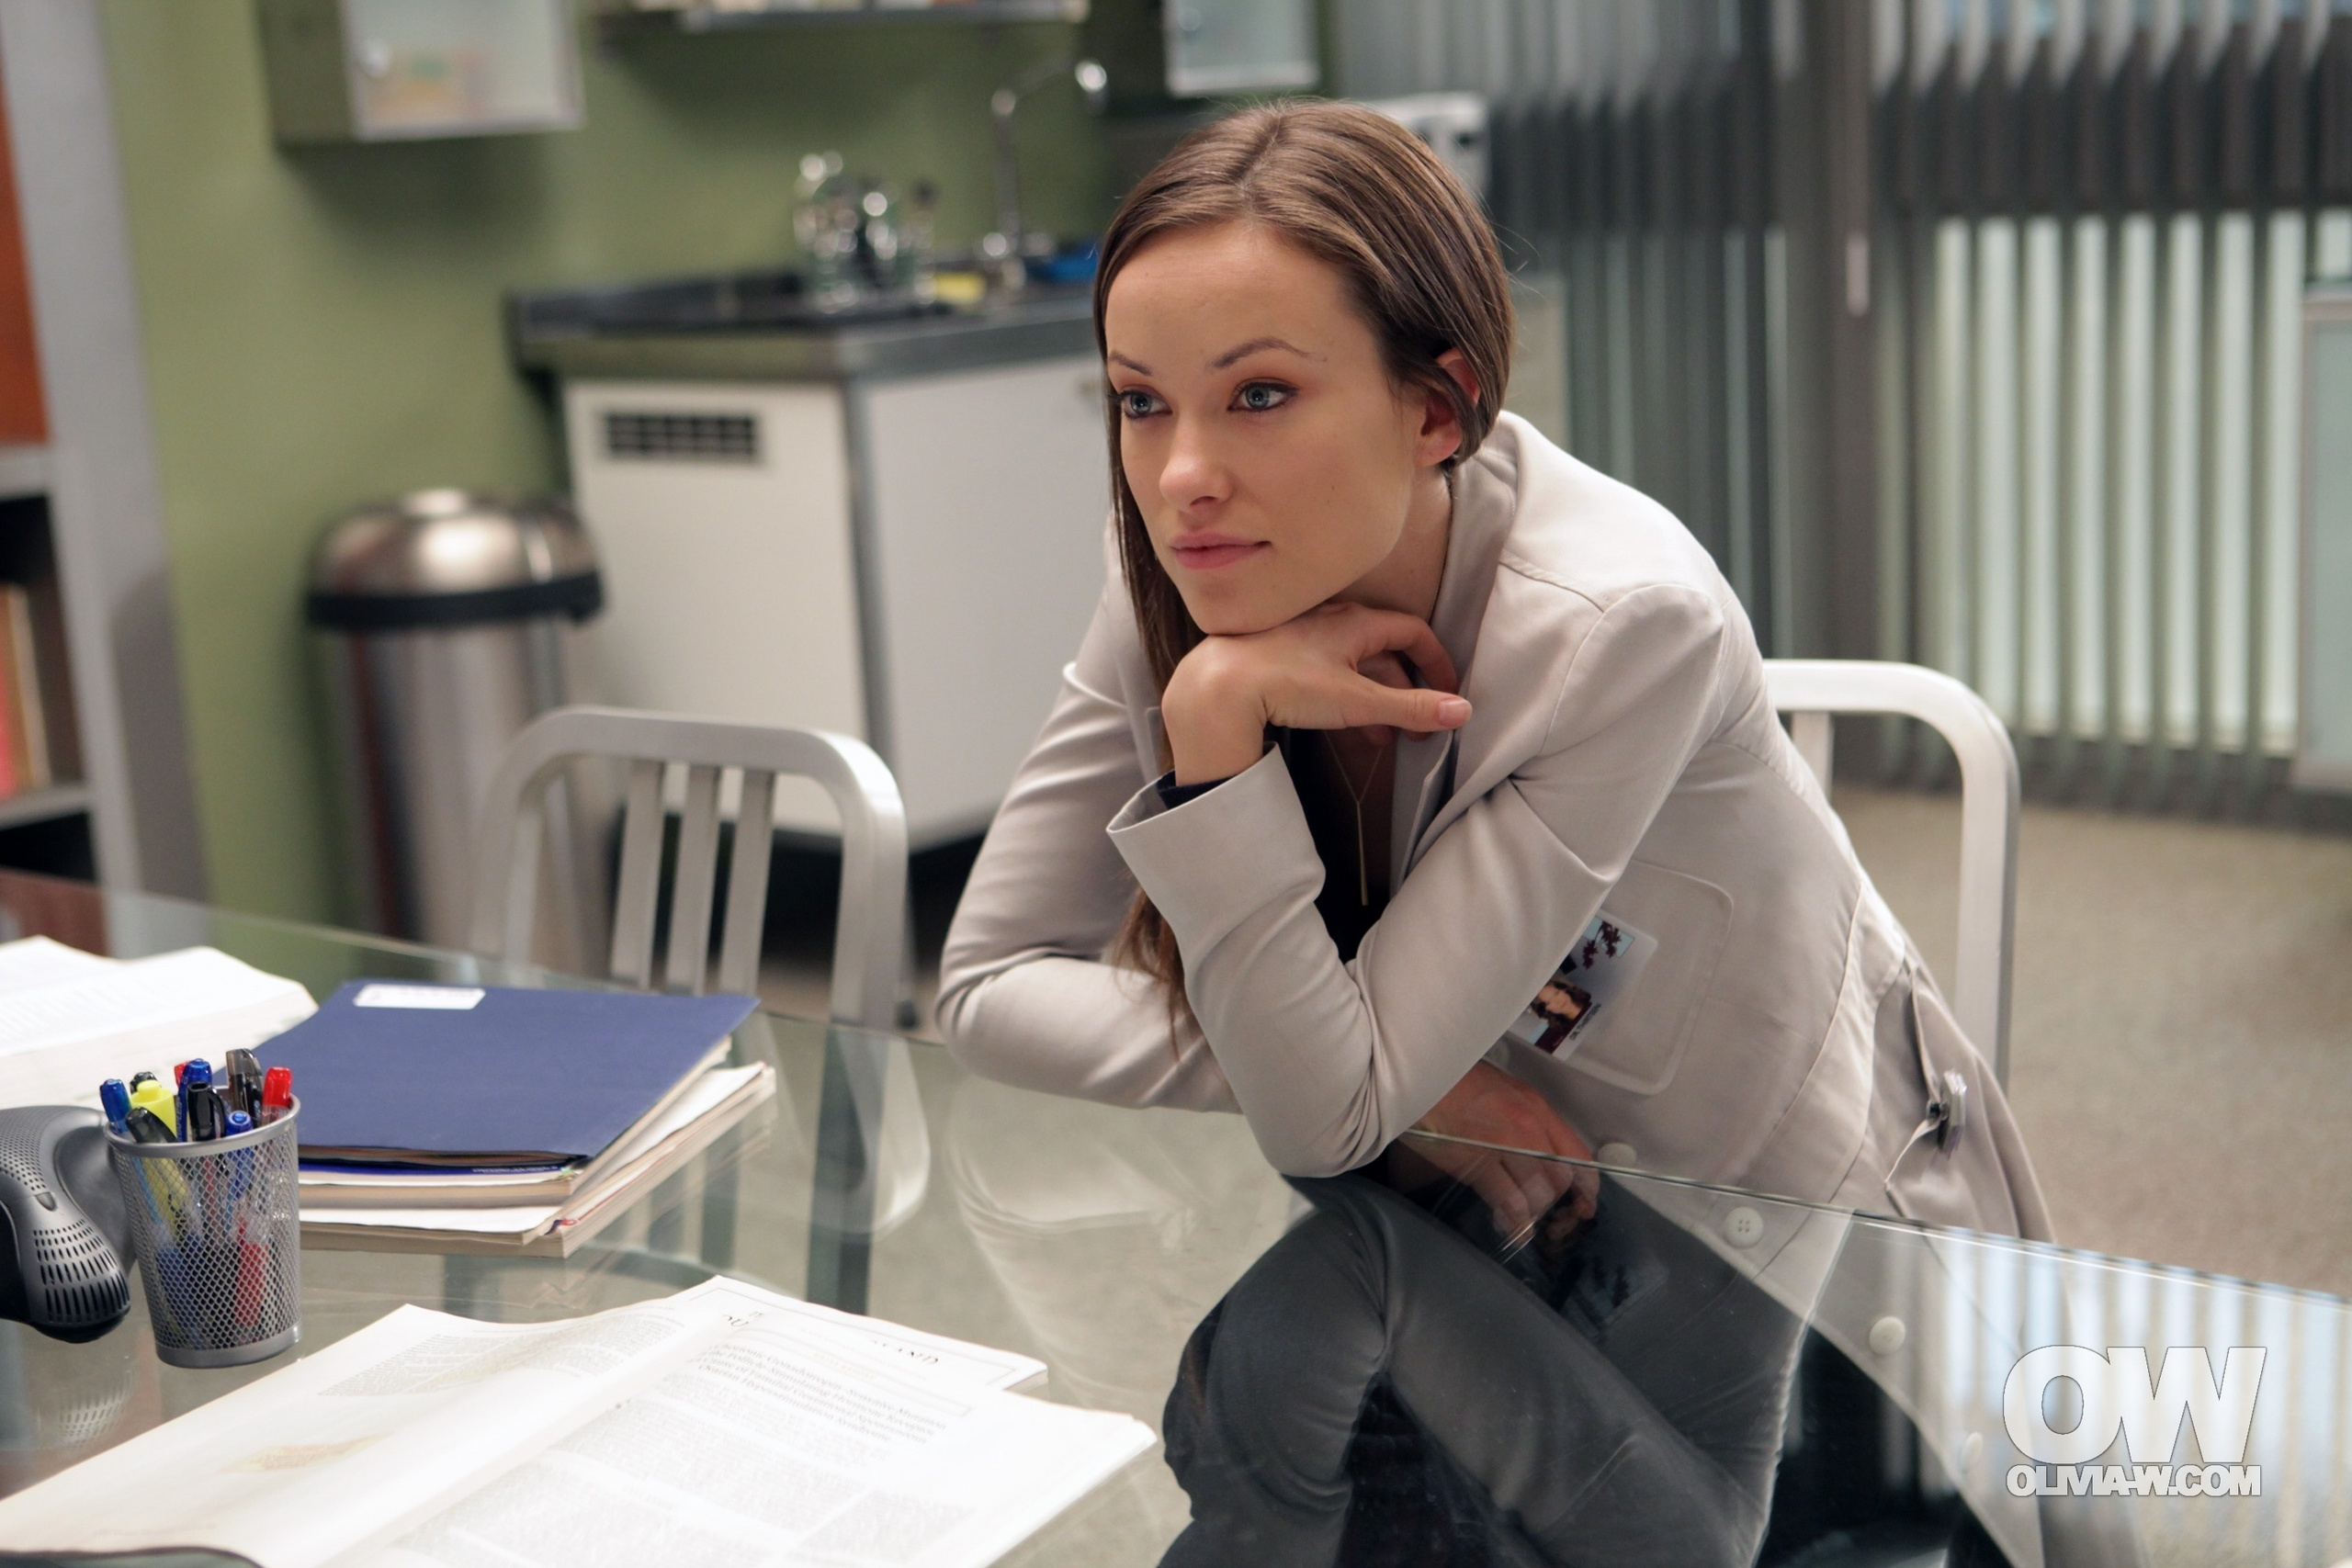 Amanda Seyfried Dr House toy saturn: [let's watch] house m.d